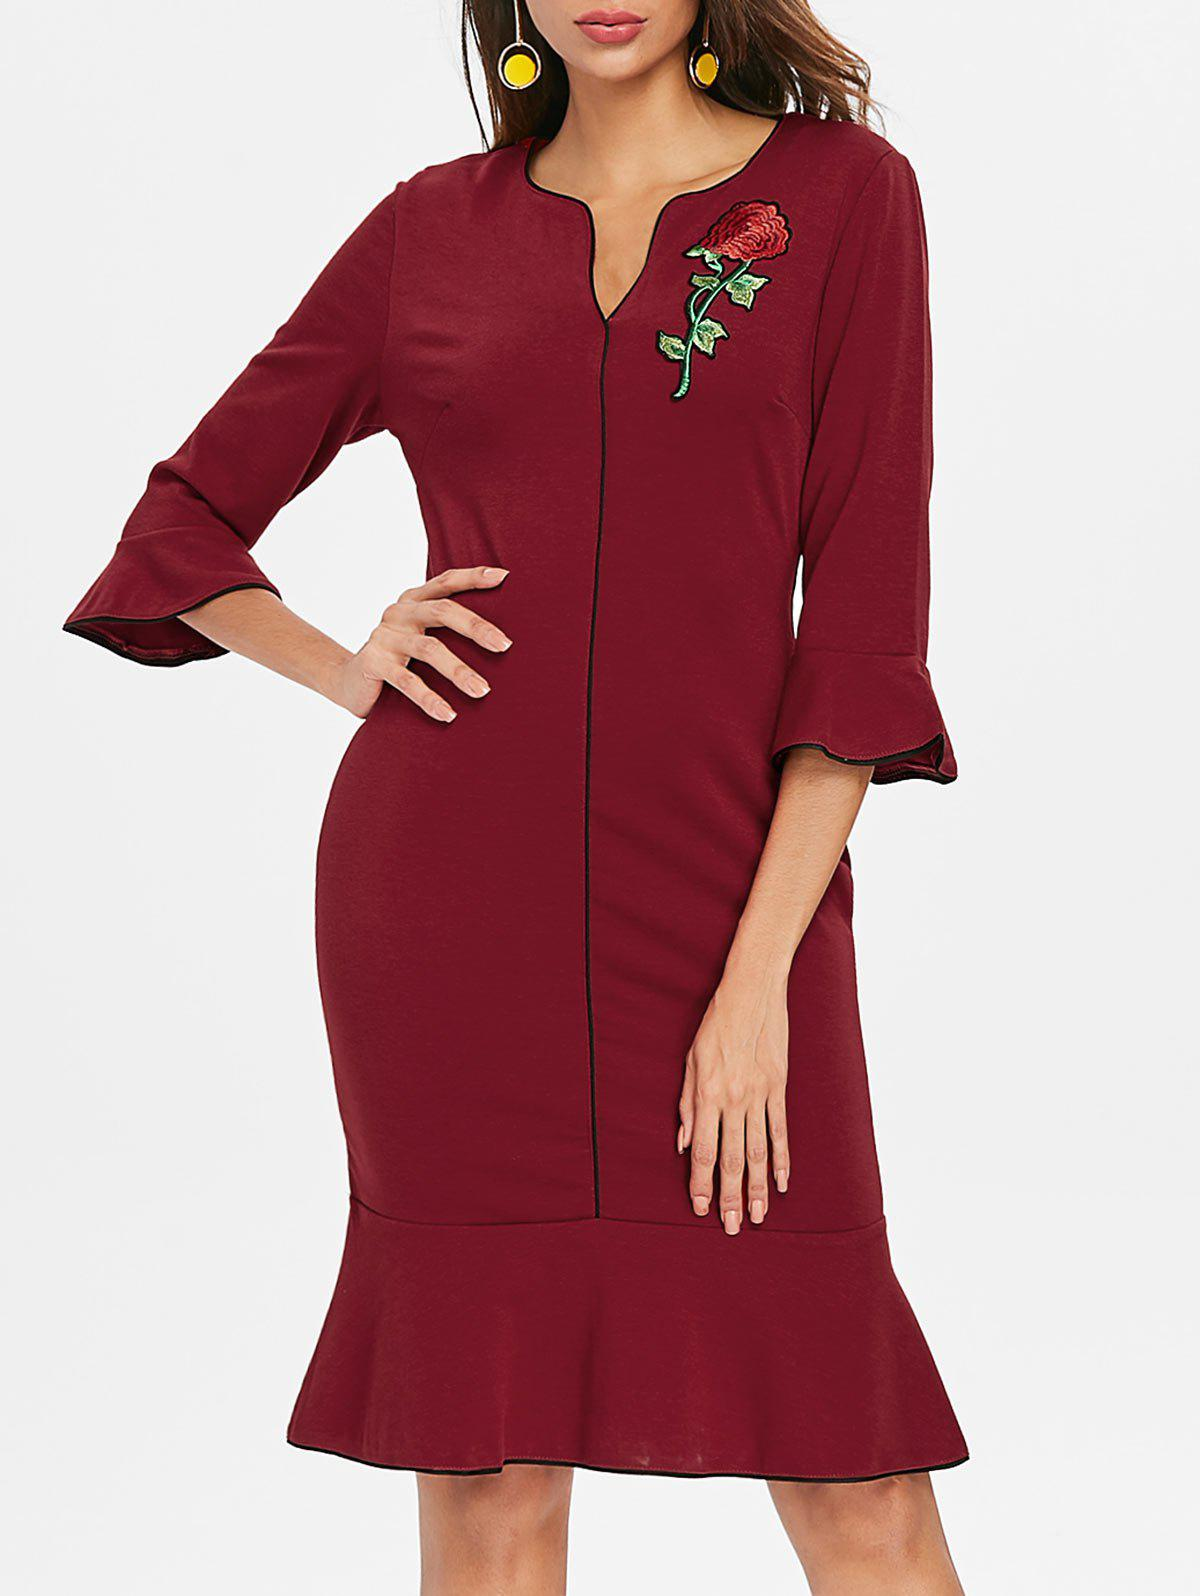 New Flare Sleeve Embroidery Bodycon Dress